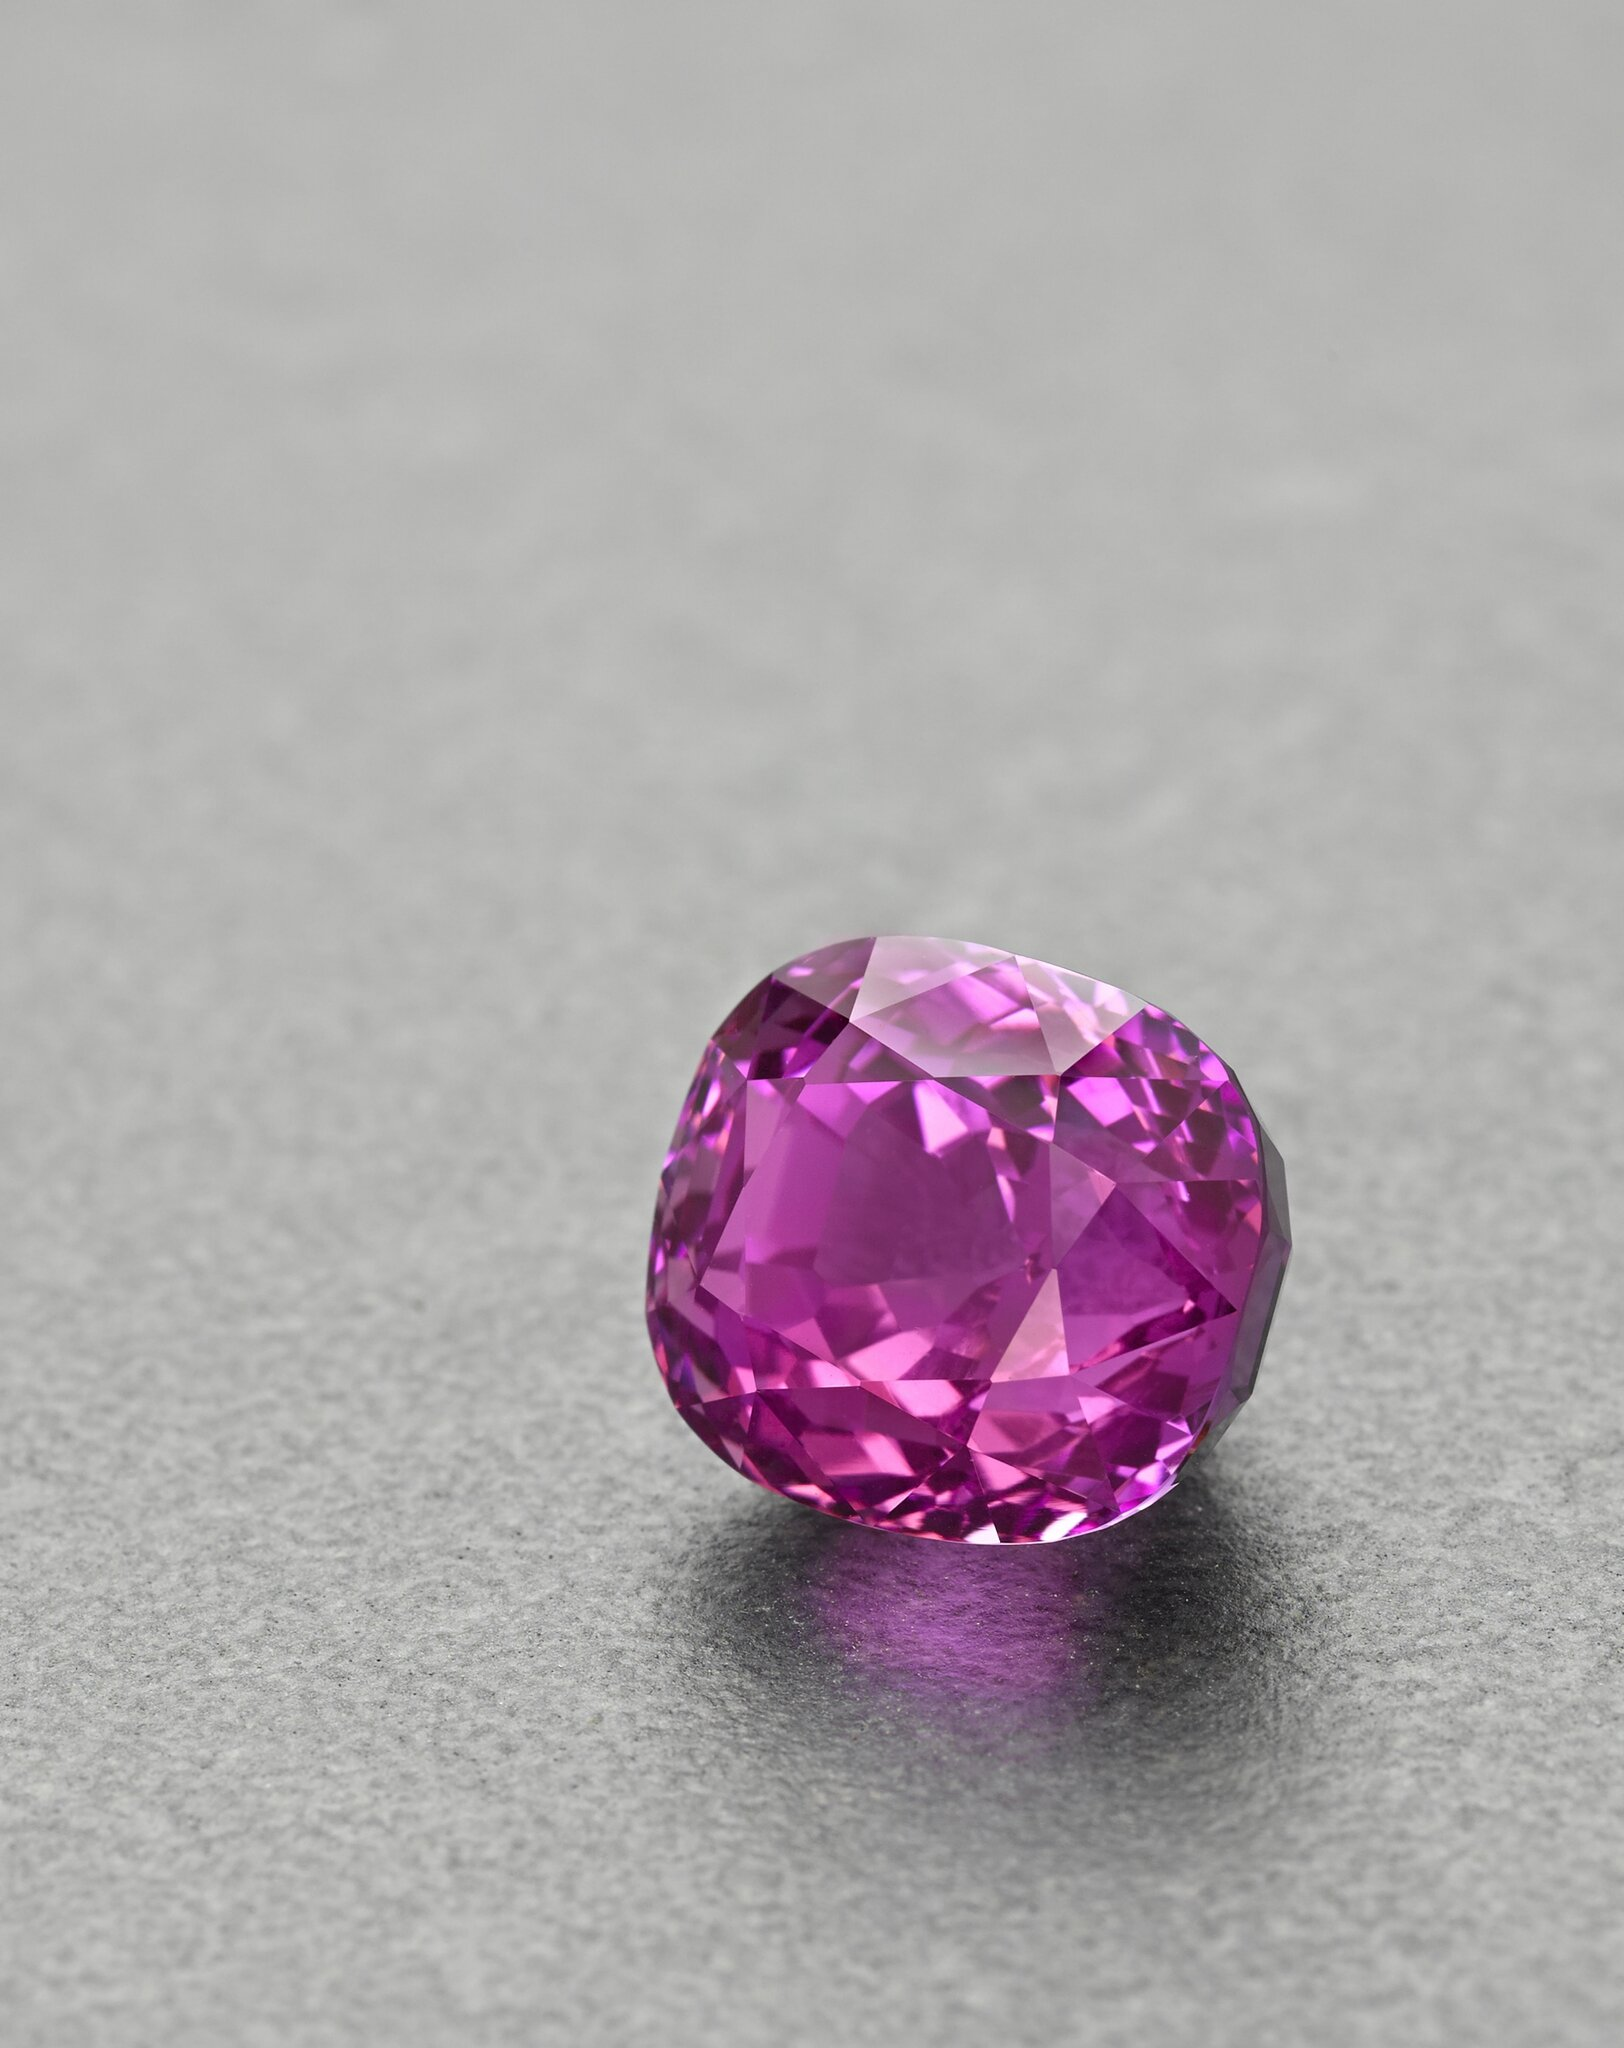 Rare natural pink Sapphire on offer in gems auction at Bonhams